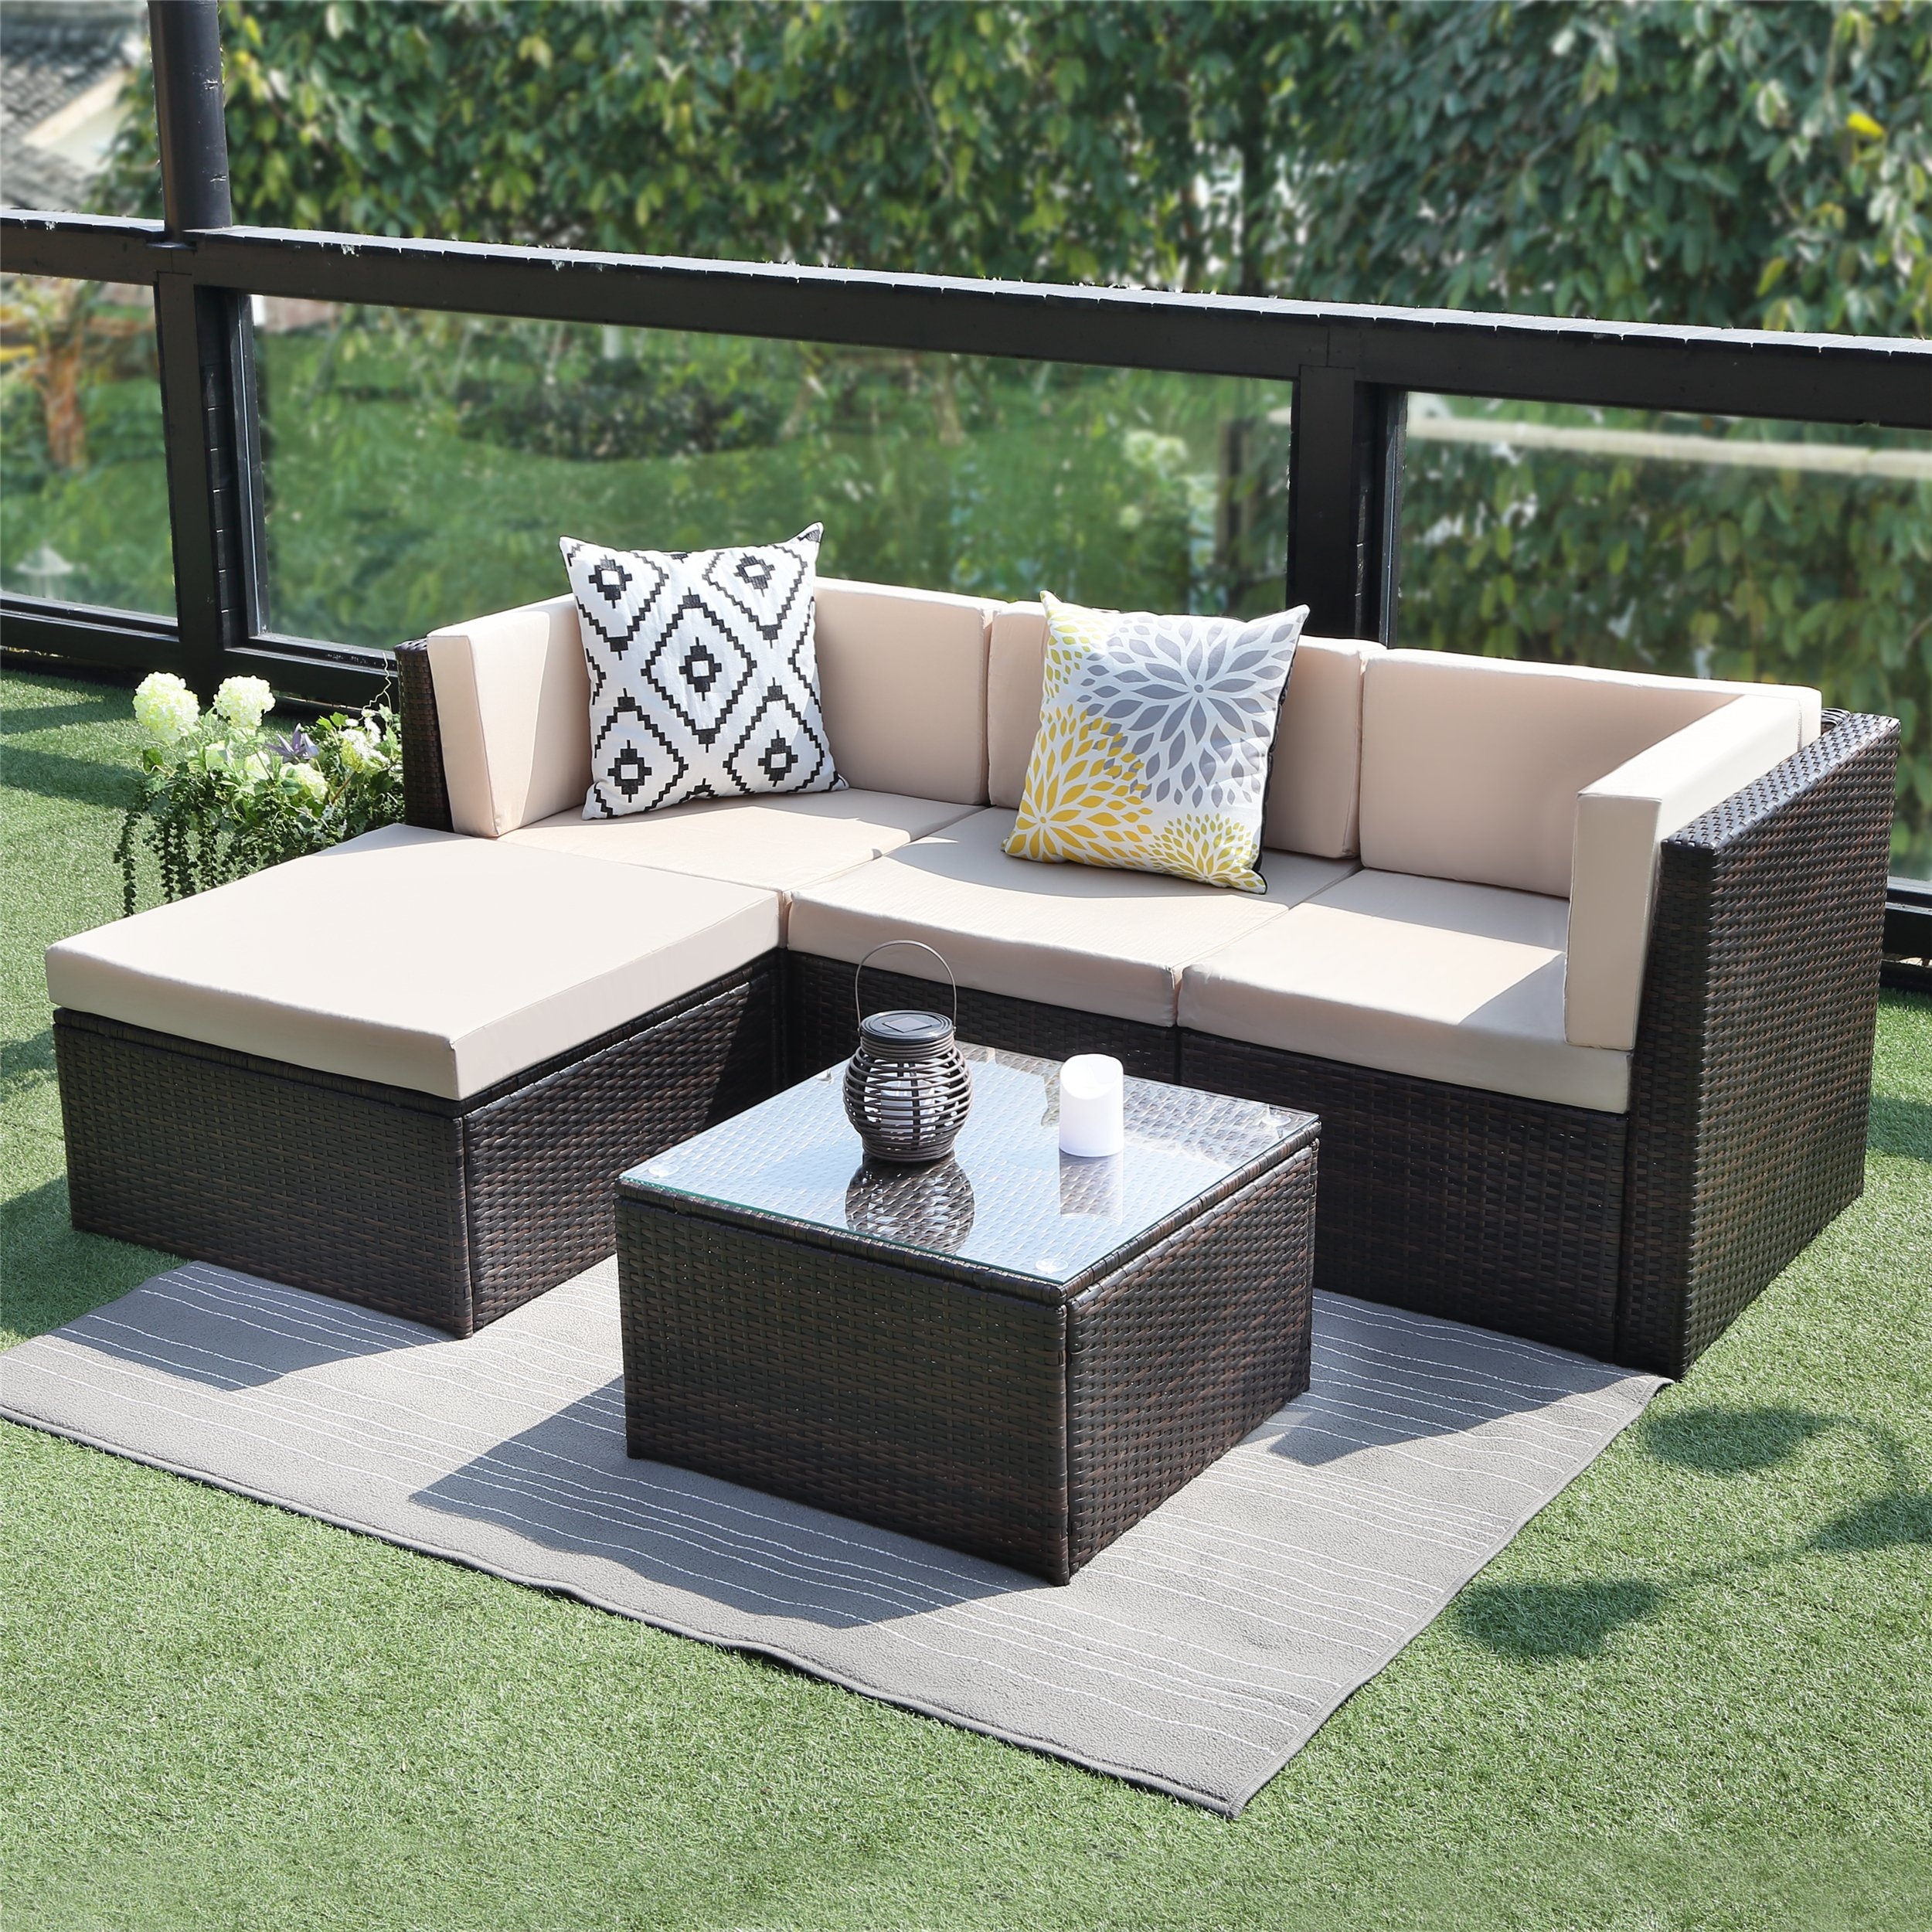 Outdoor Conversation Set Patio Furniture,Wisteria Lane 5PCS Sectional Sofa Set Wicker Glass Tale Chair with Ottoma,Brown